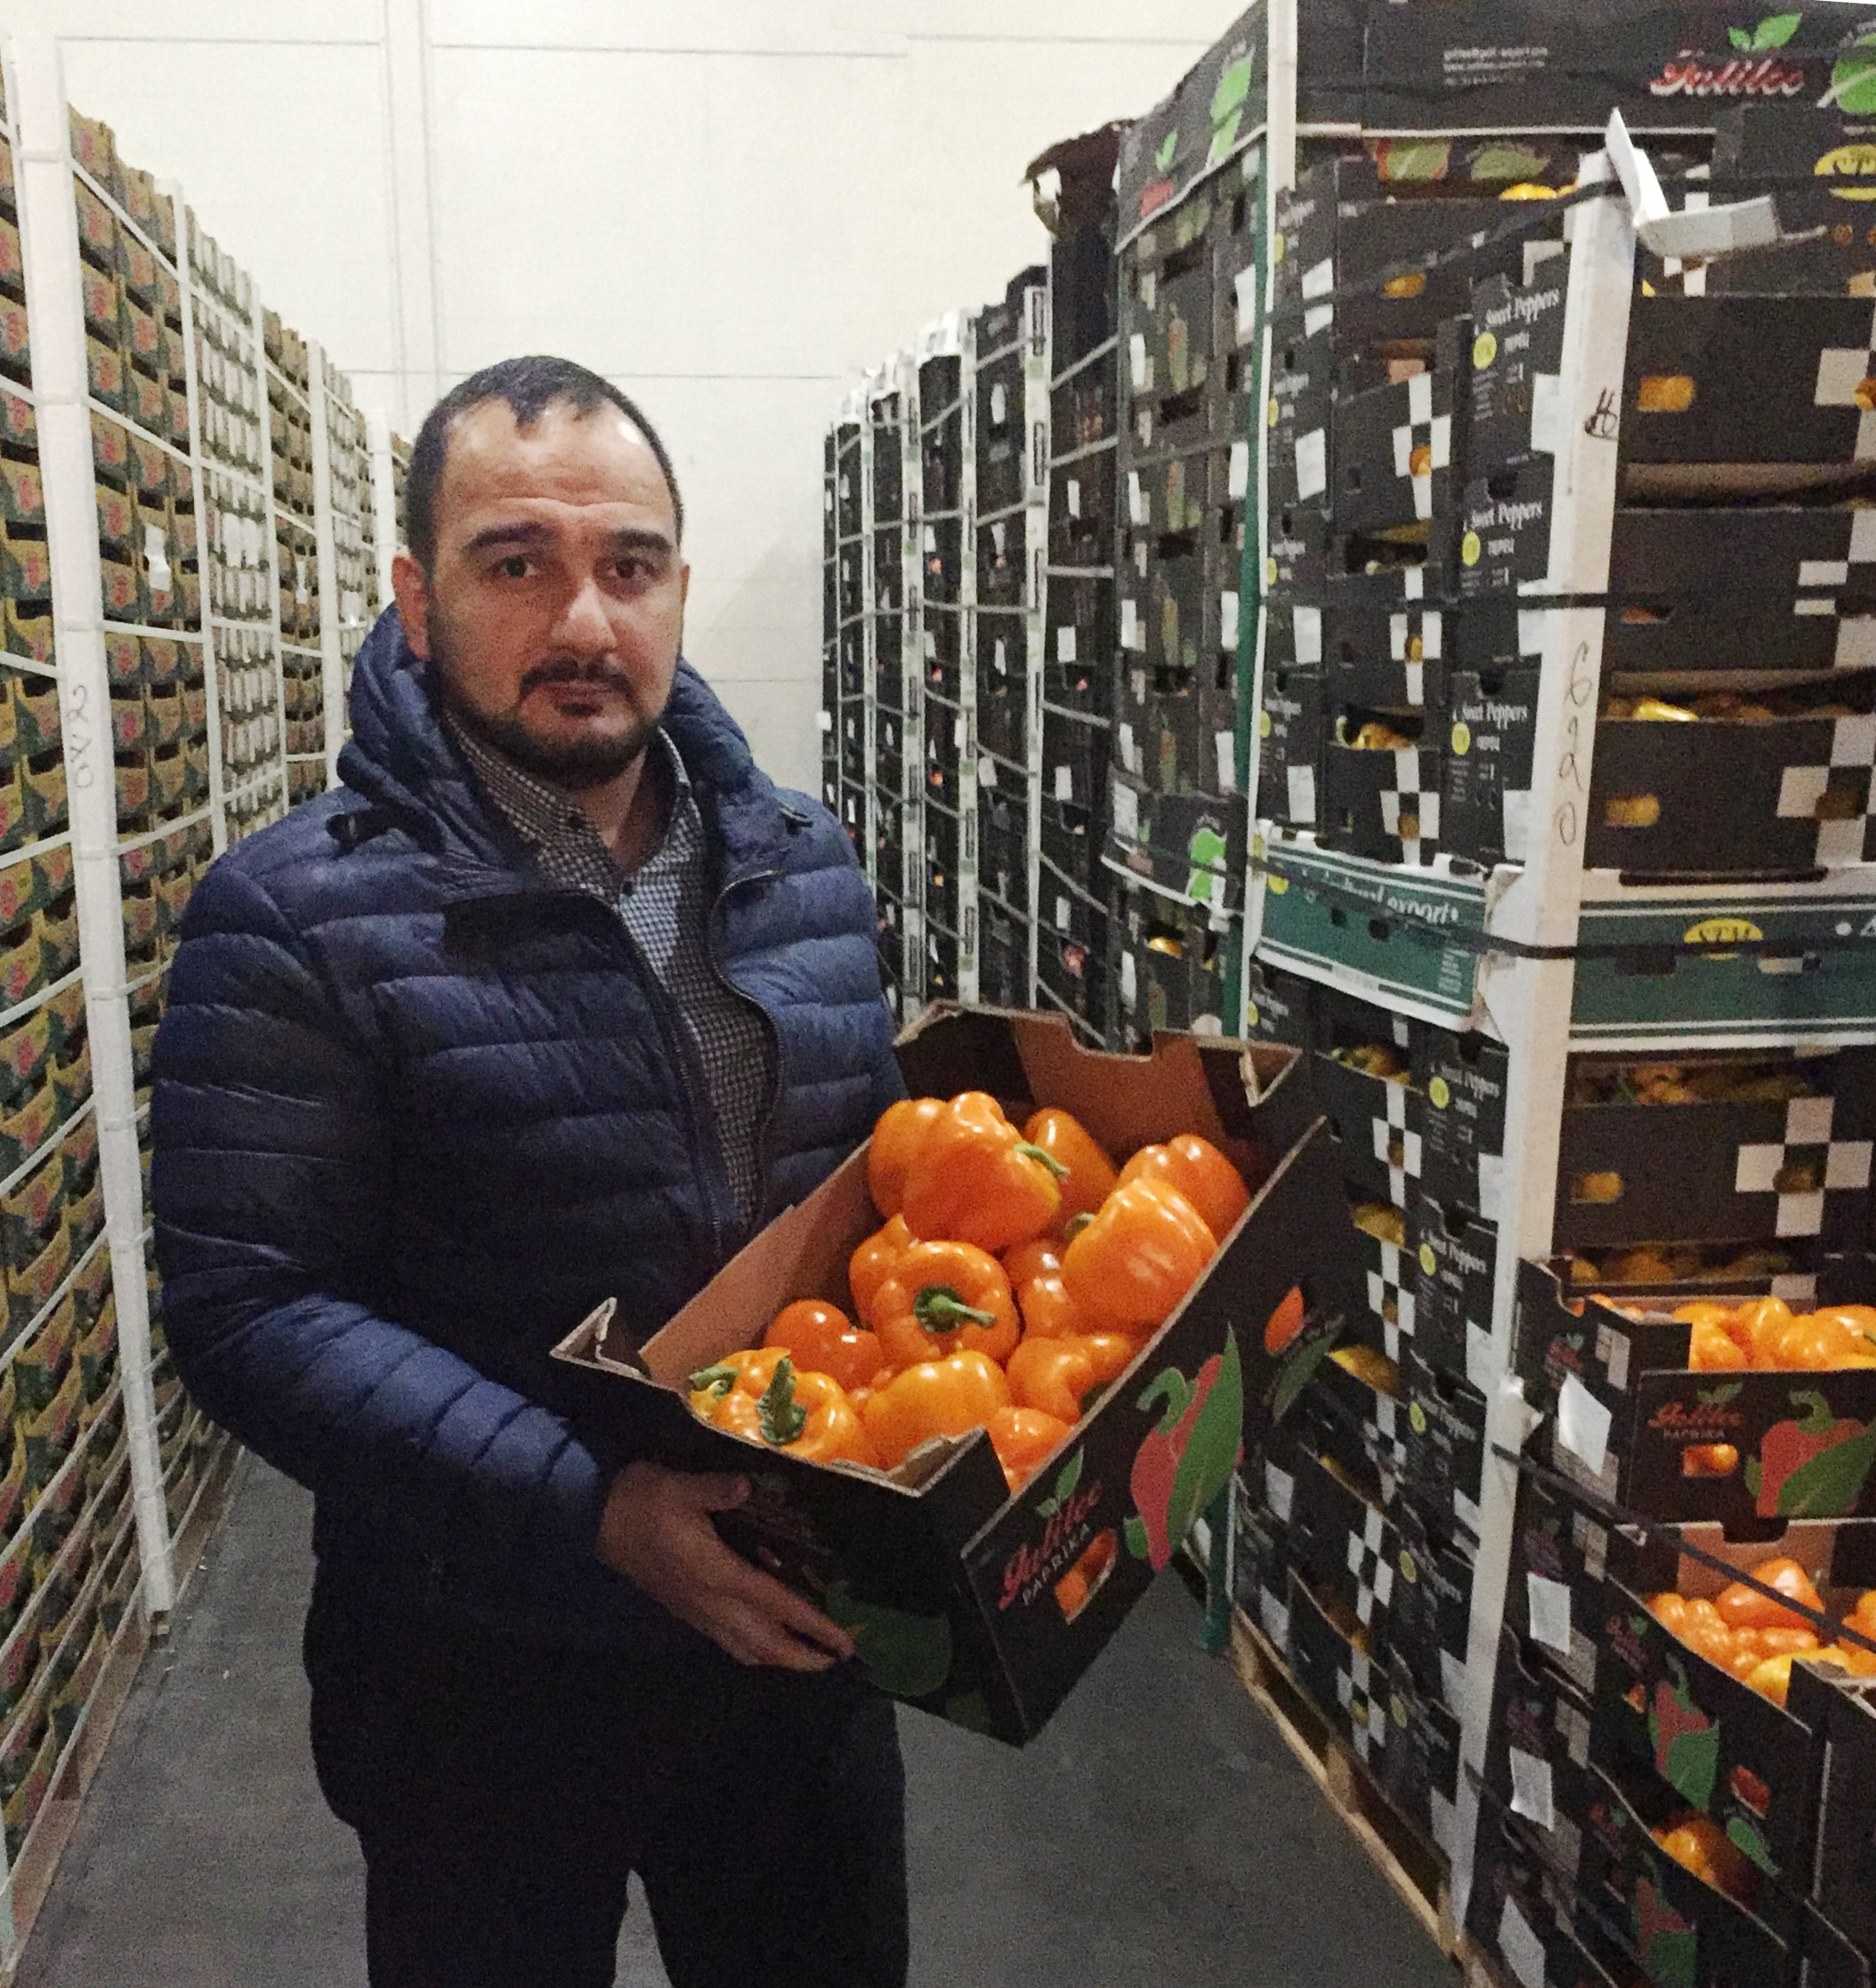 Iran has been gaining its position in Russia as an important exporter of sweet pepper